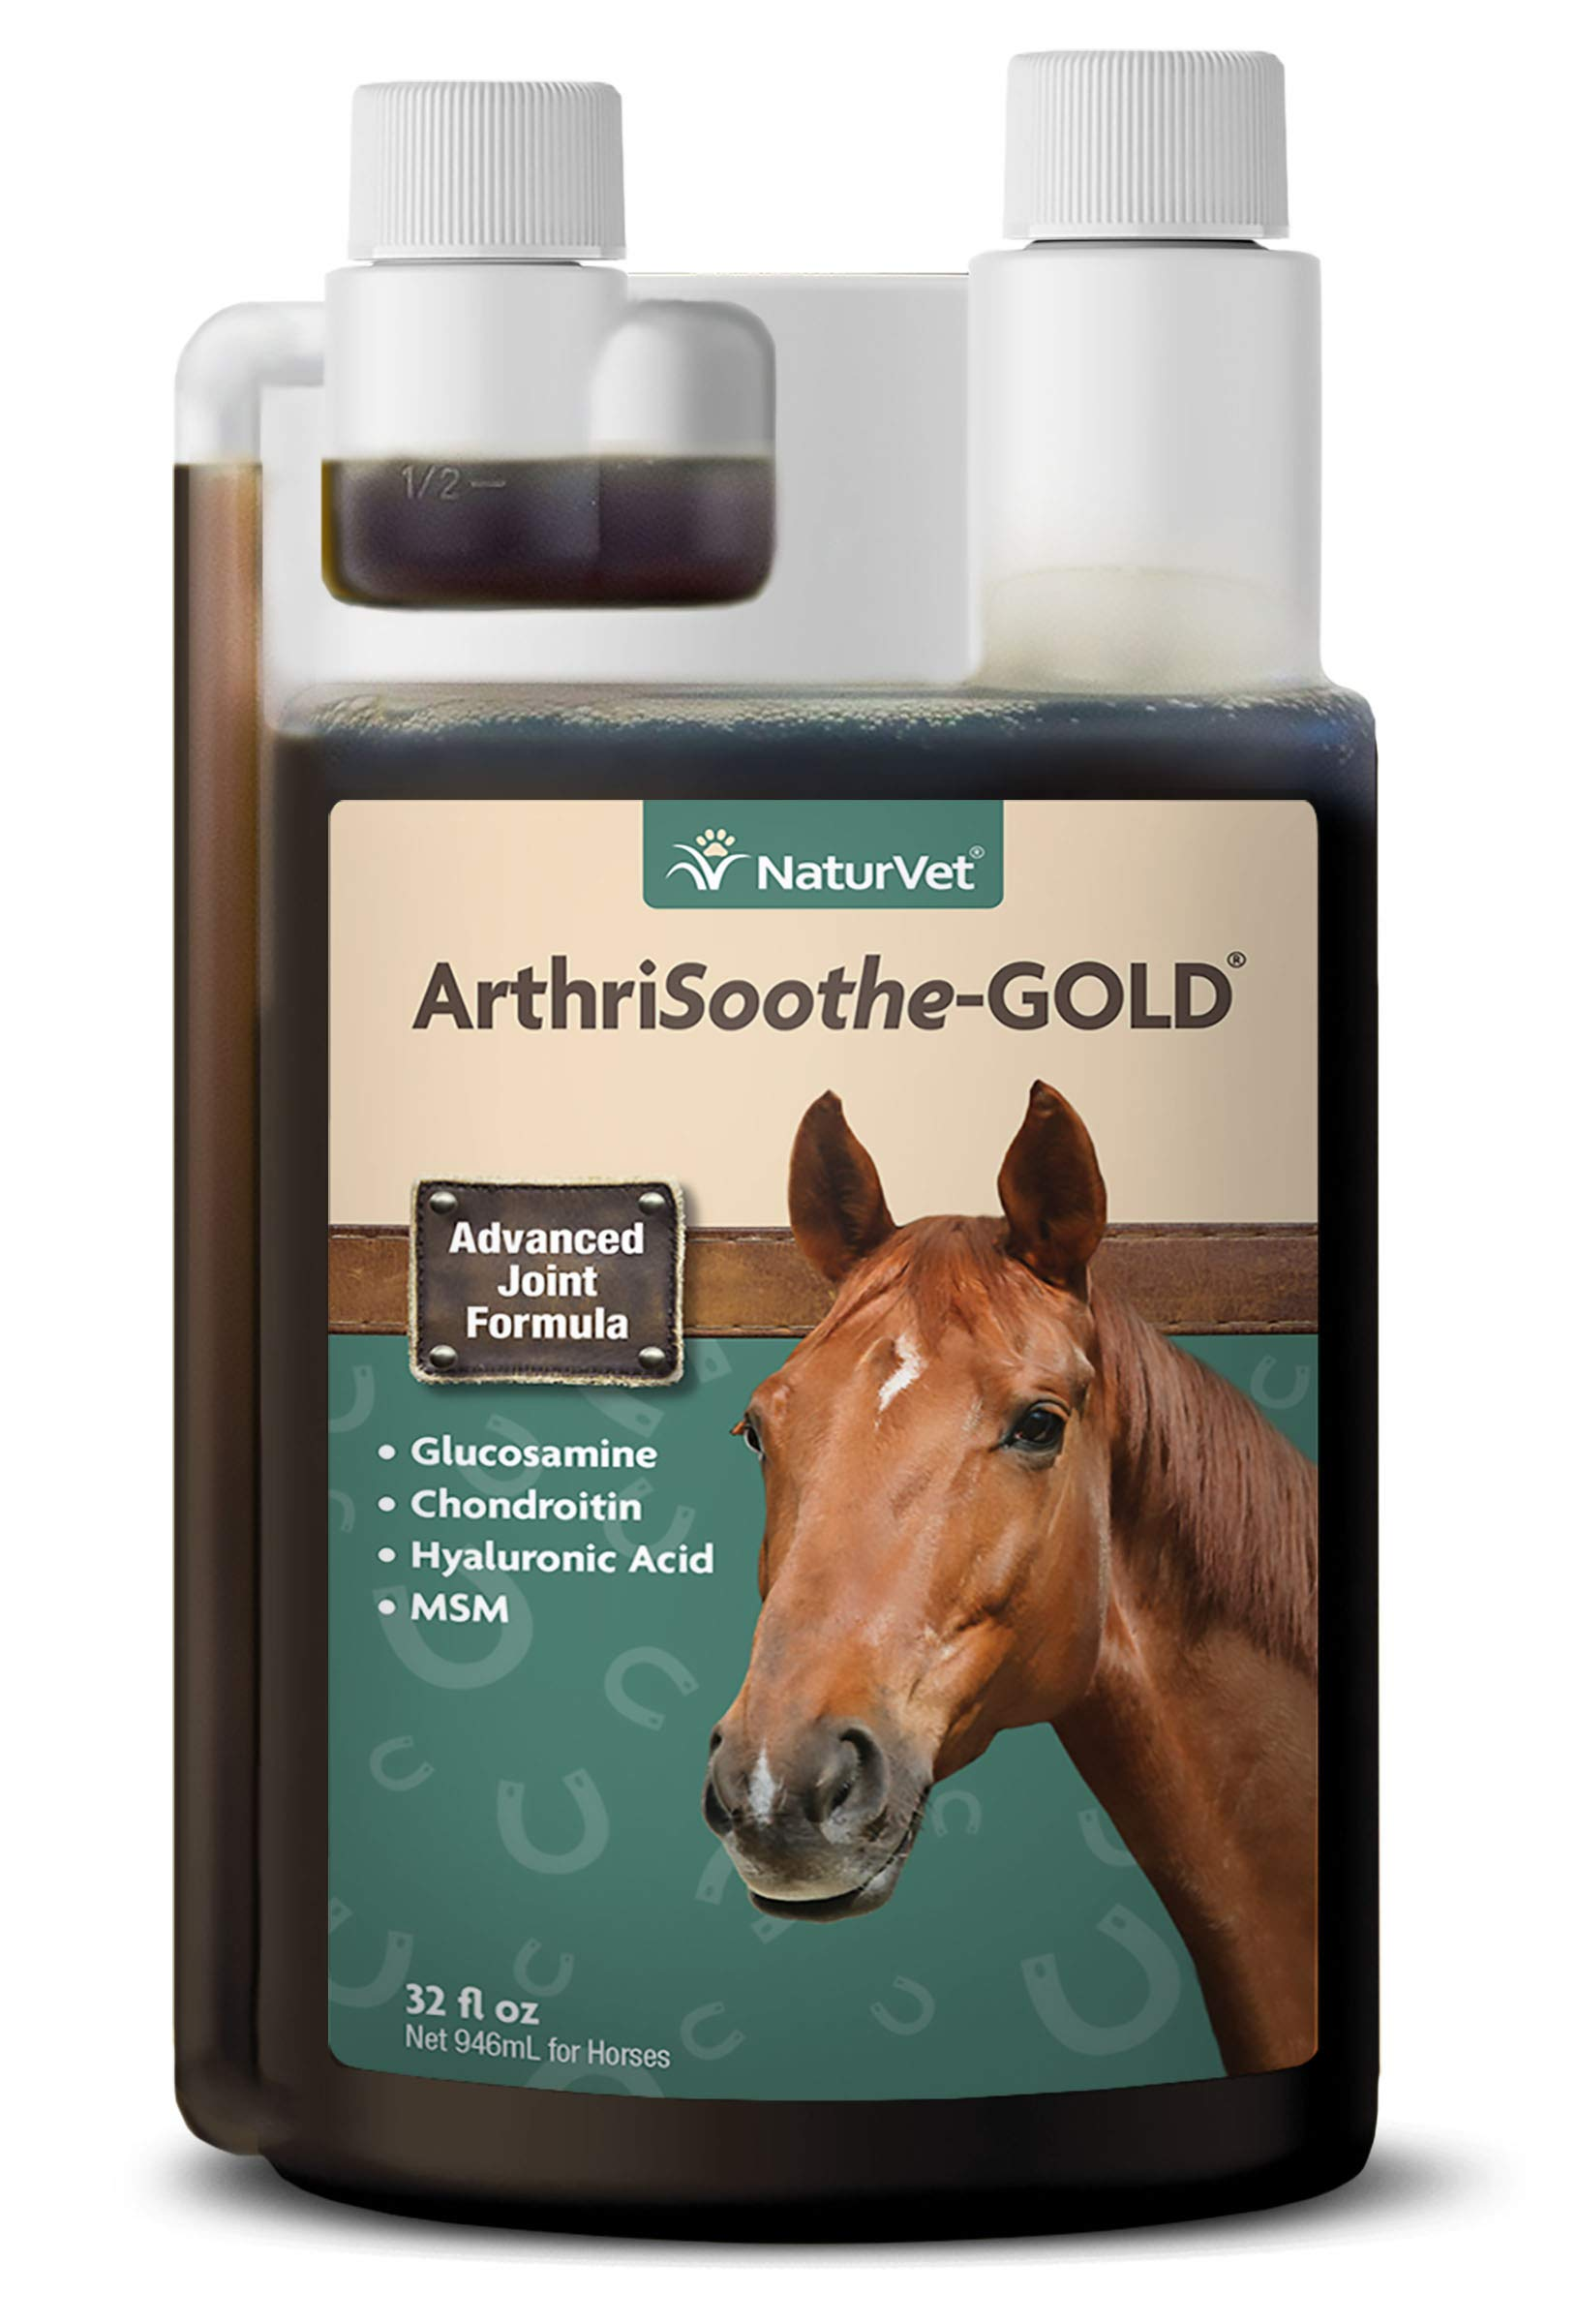 NaturVet - ArthriSoothe-Gold Advanced Joint Formula - Horse Liquid - Supports Healthy Joint Function - Enhanced with Glucosamine, MSM, Chondroitin & Hyaluronic Acid (32 oz Liquid) by NaturVet